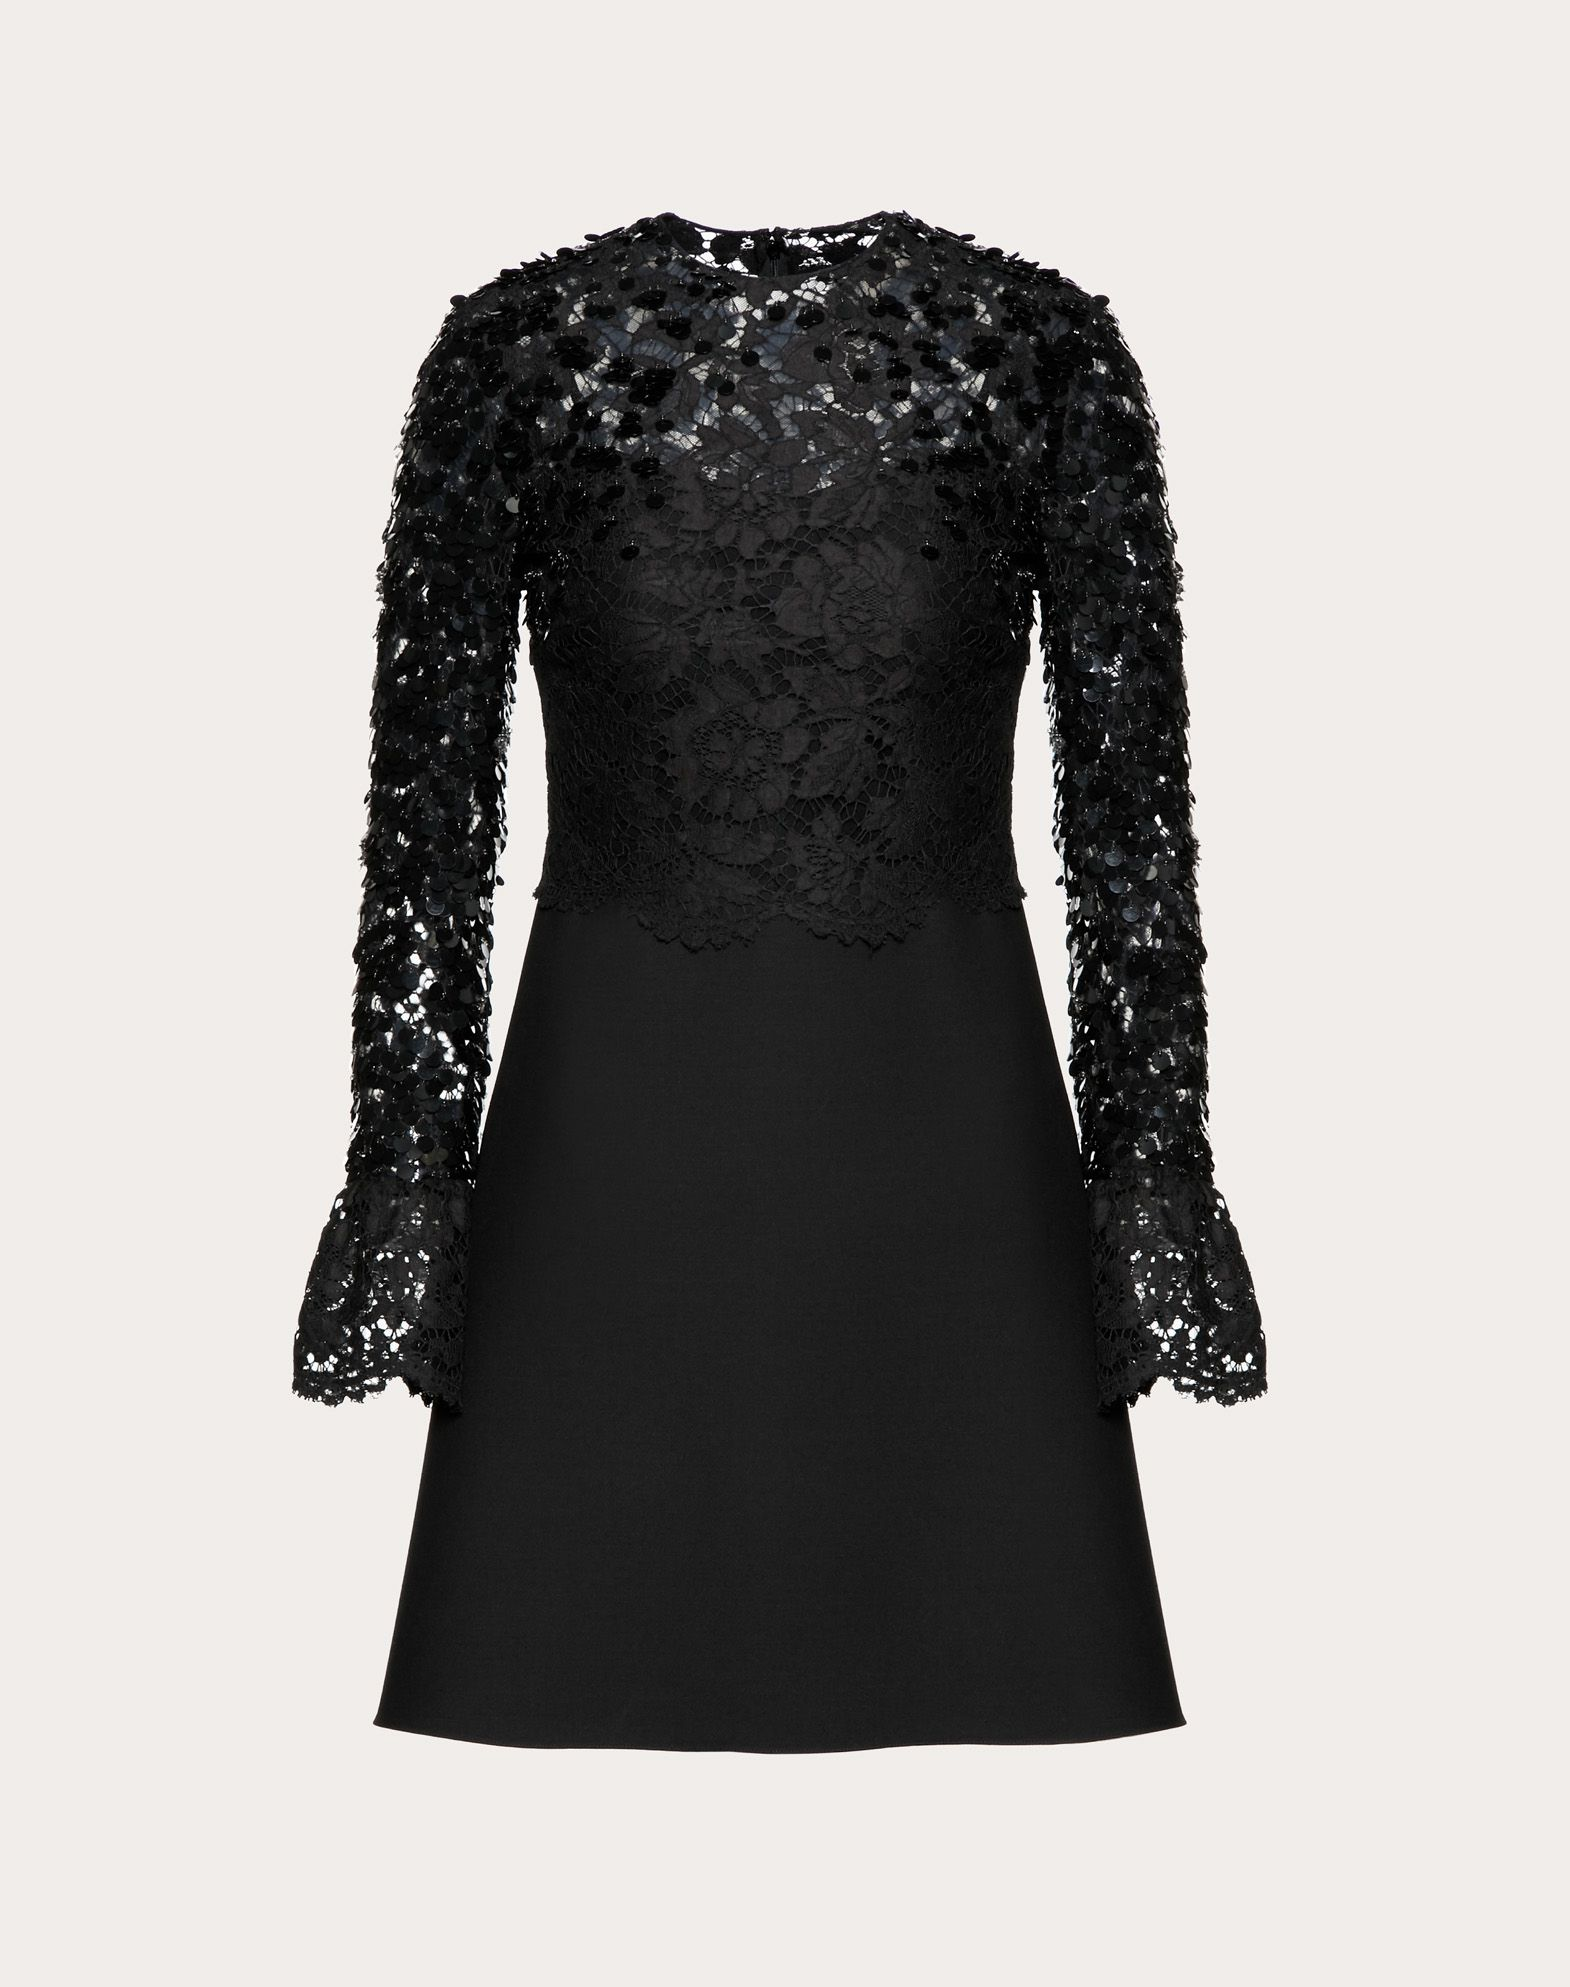 EMBELLISHED CREPE COUTURE AND HEAVY LACE DRESS